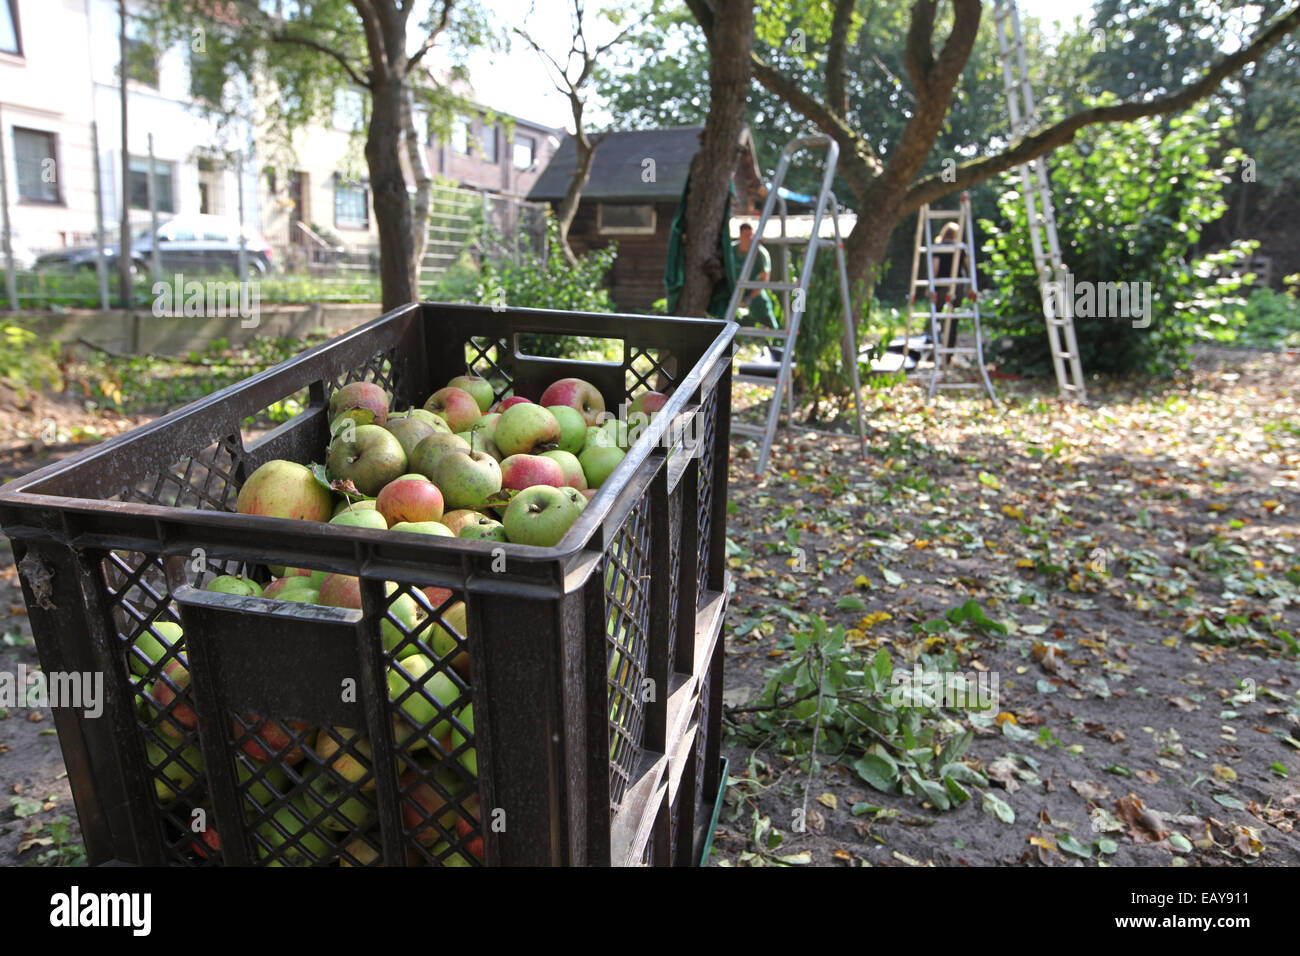 apple harvest ladder stockfotos apple harvest ladder bilder alamy. Black Bedroom Furniture Sets. Home Design Ideas